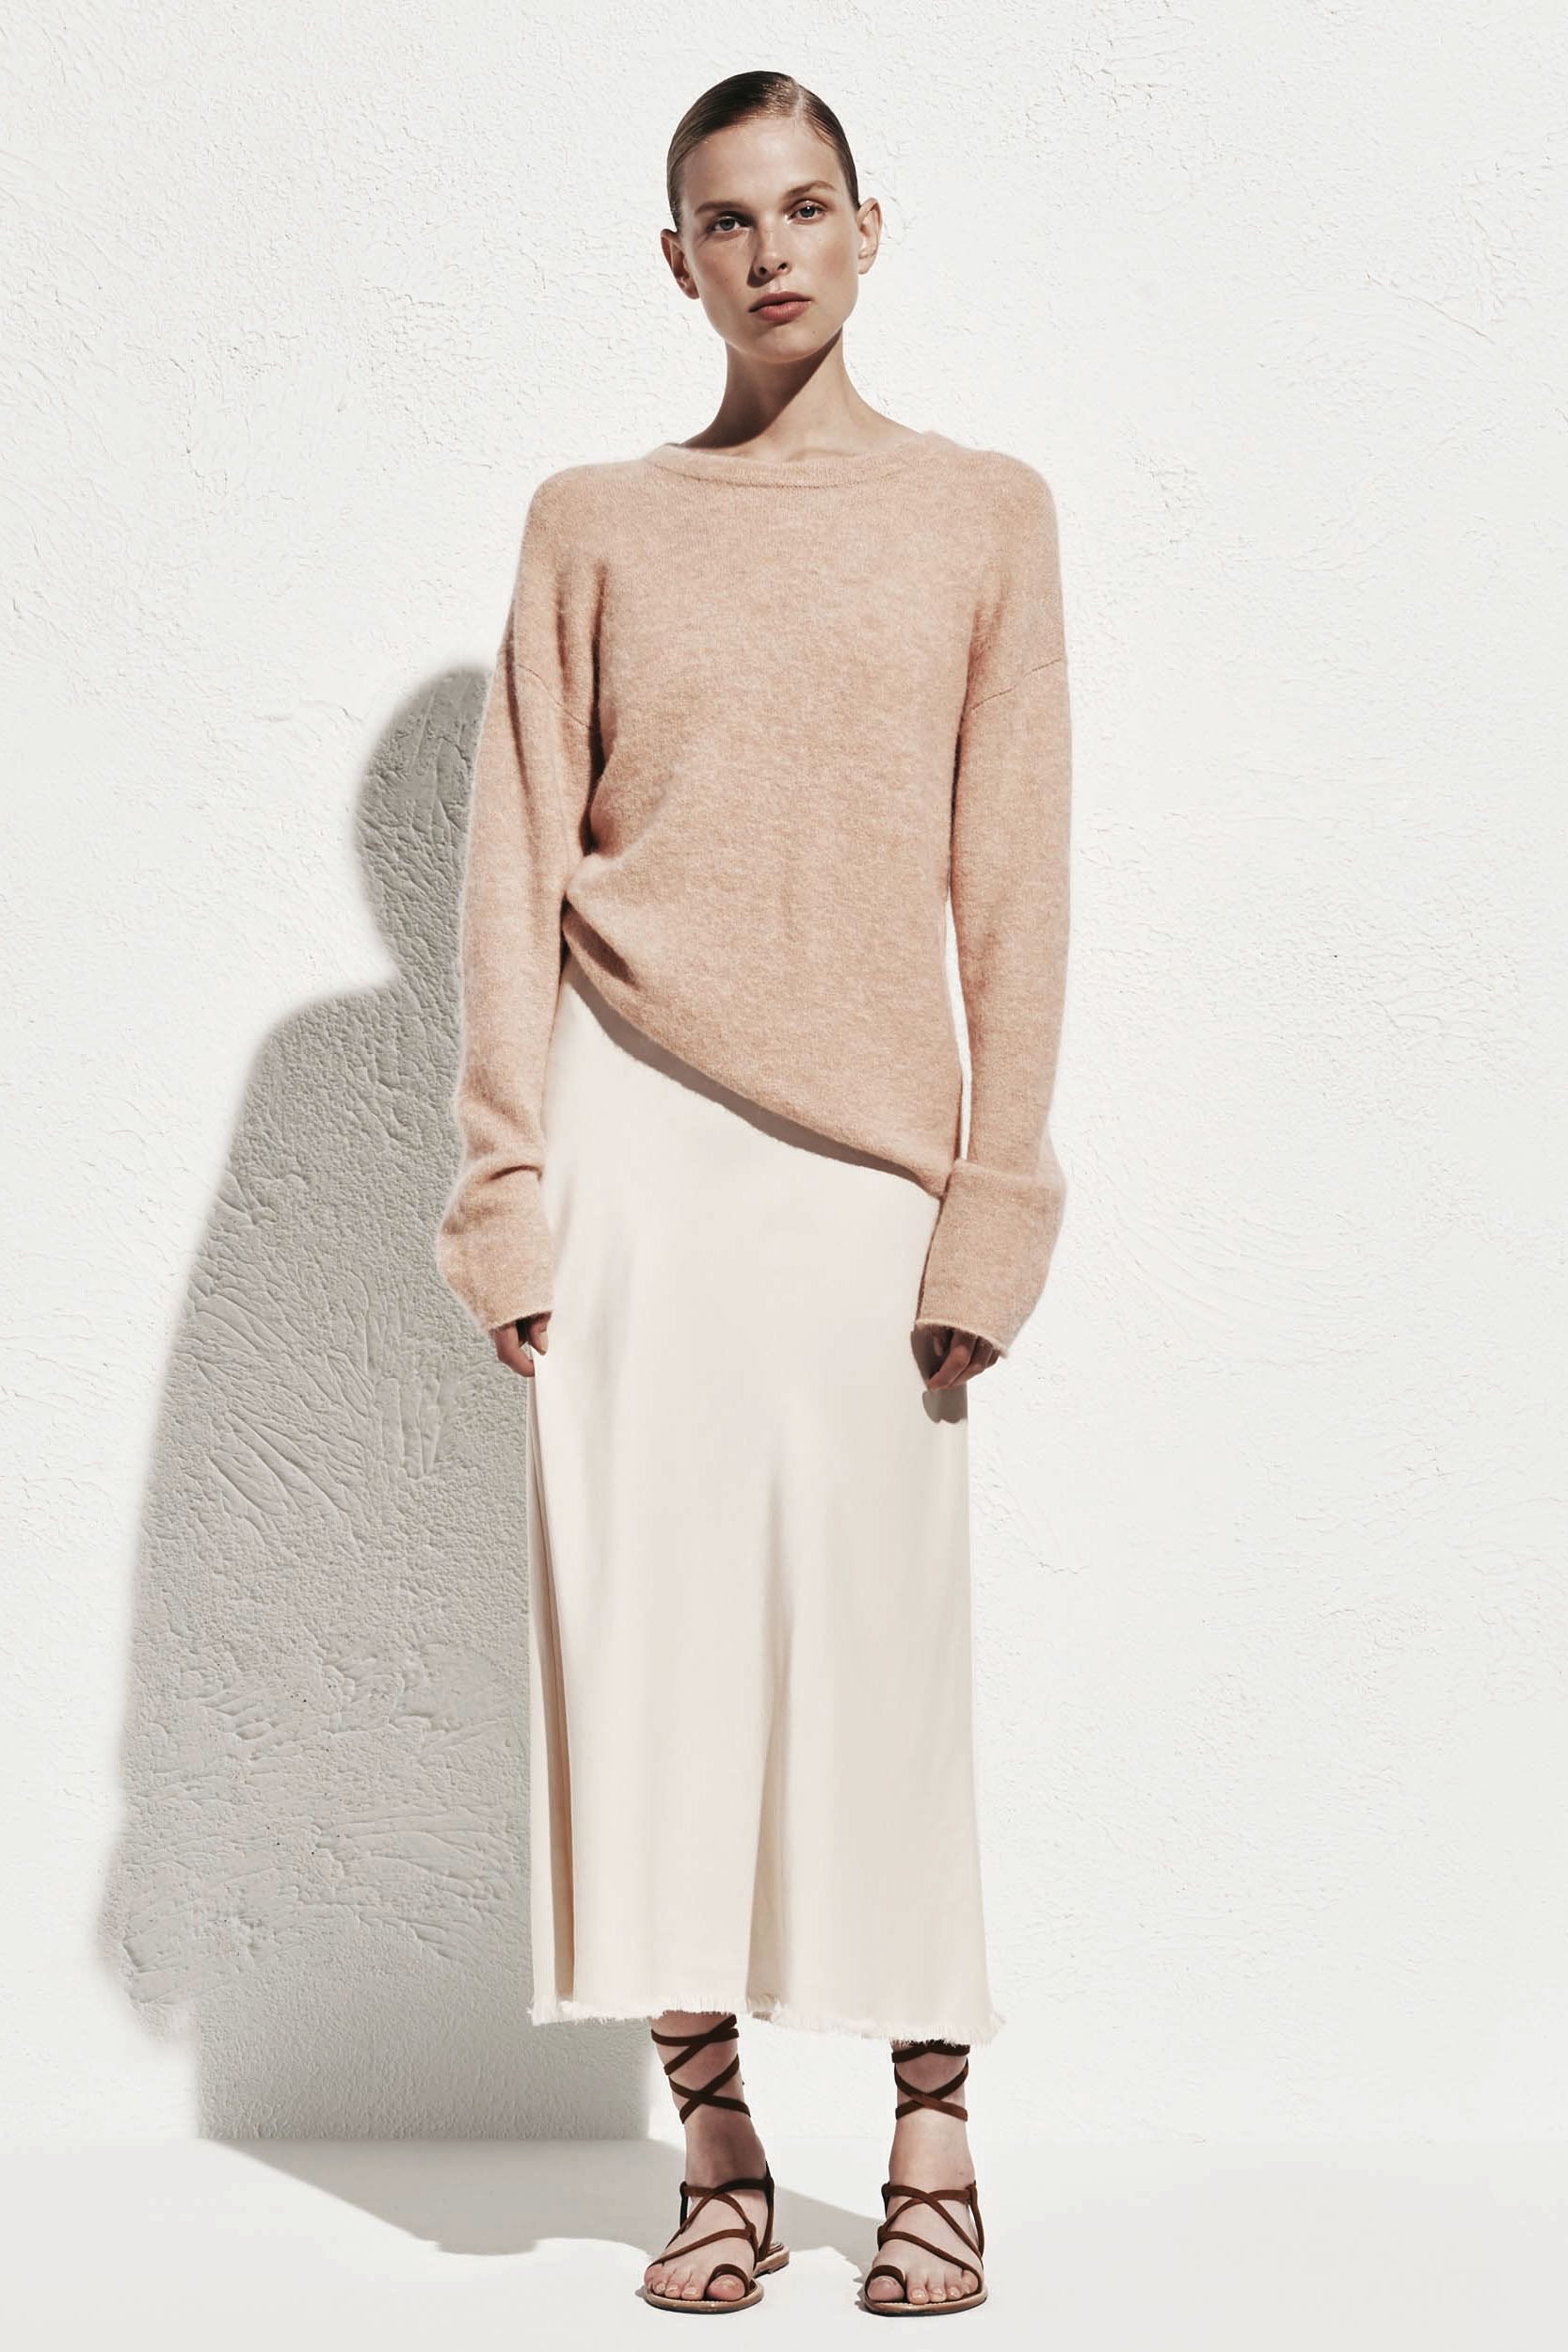 Pin on Beige / Nude / Neutral Colours